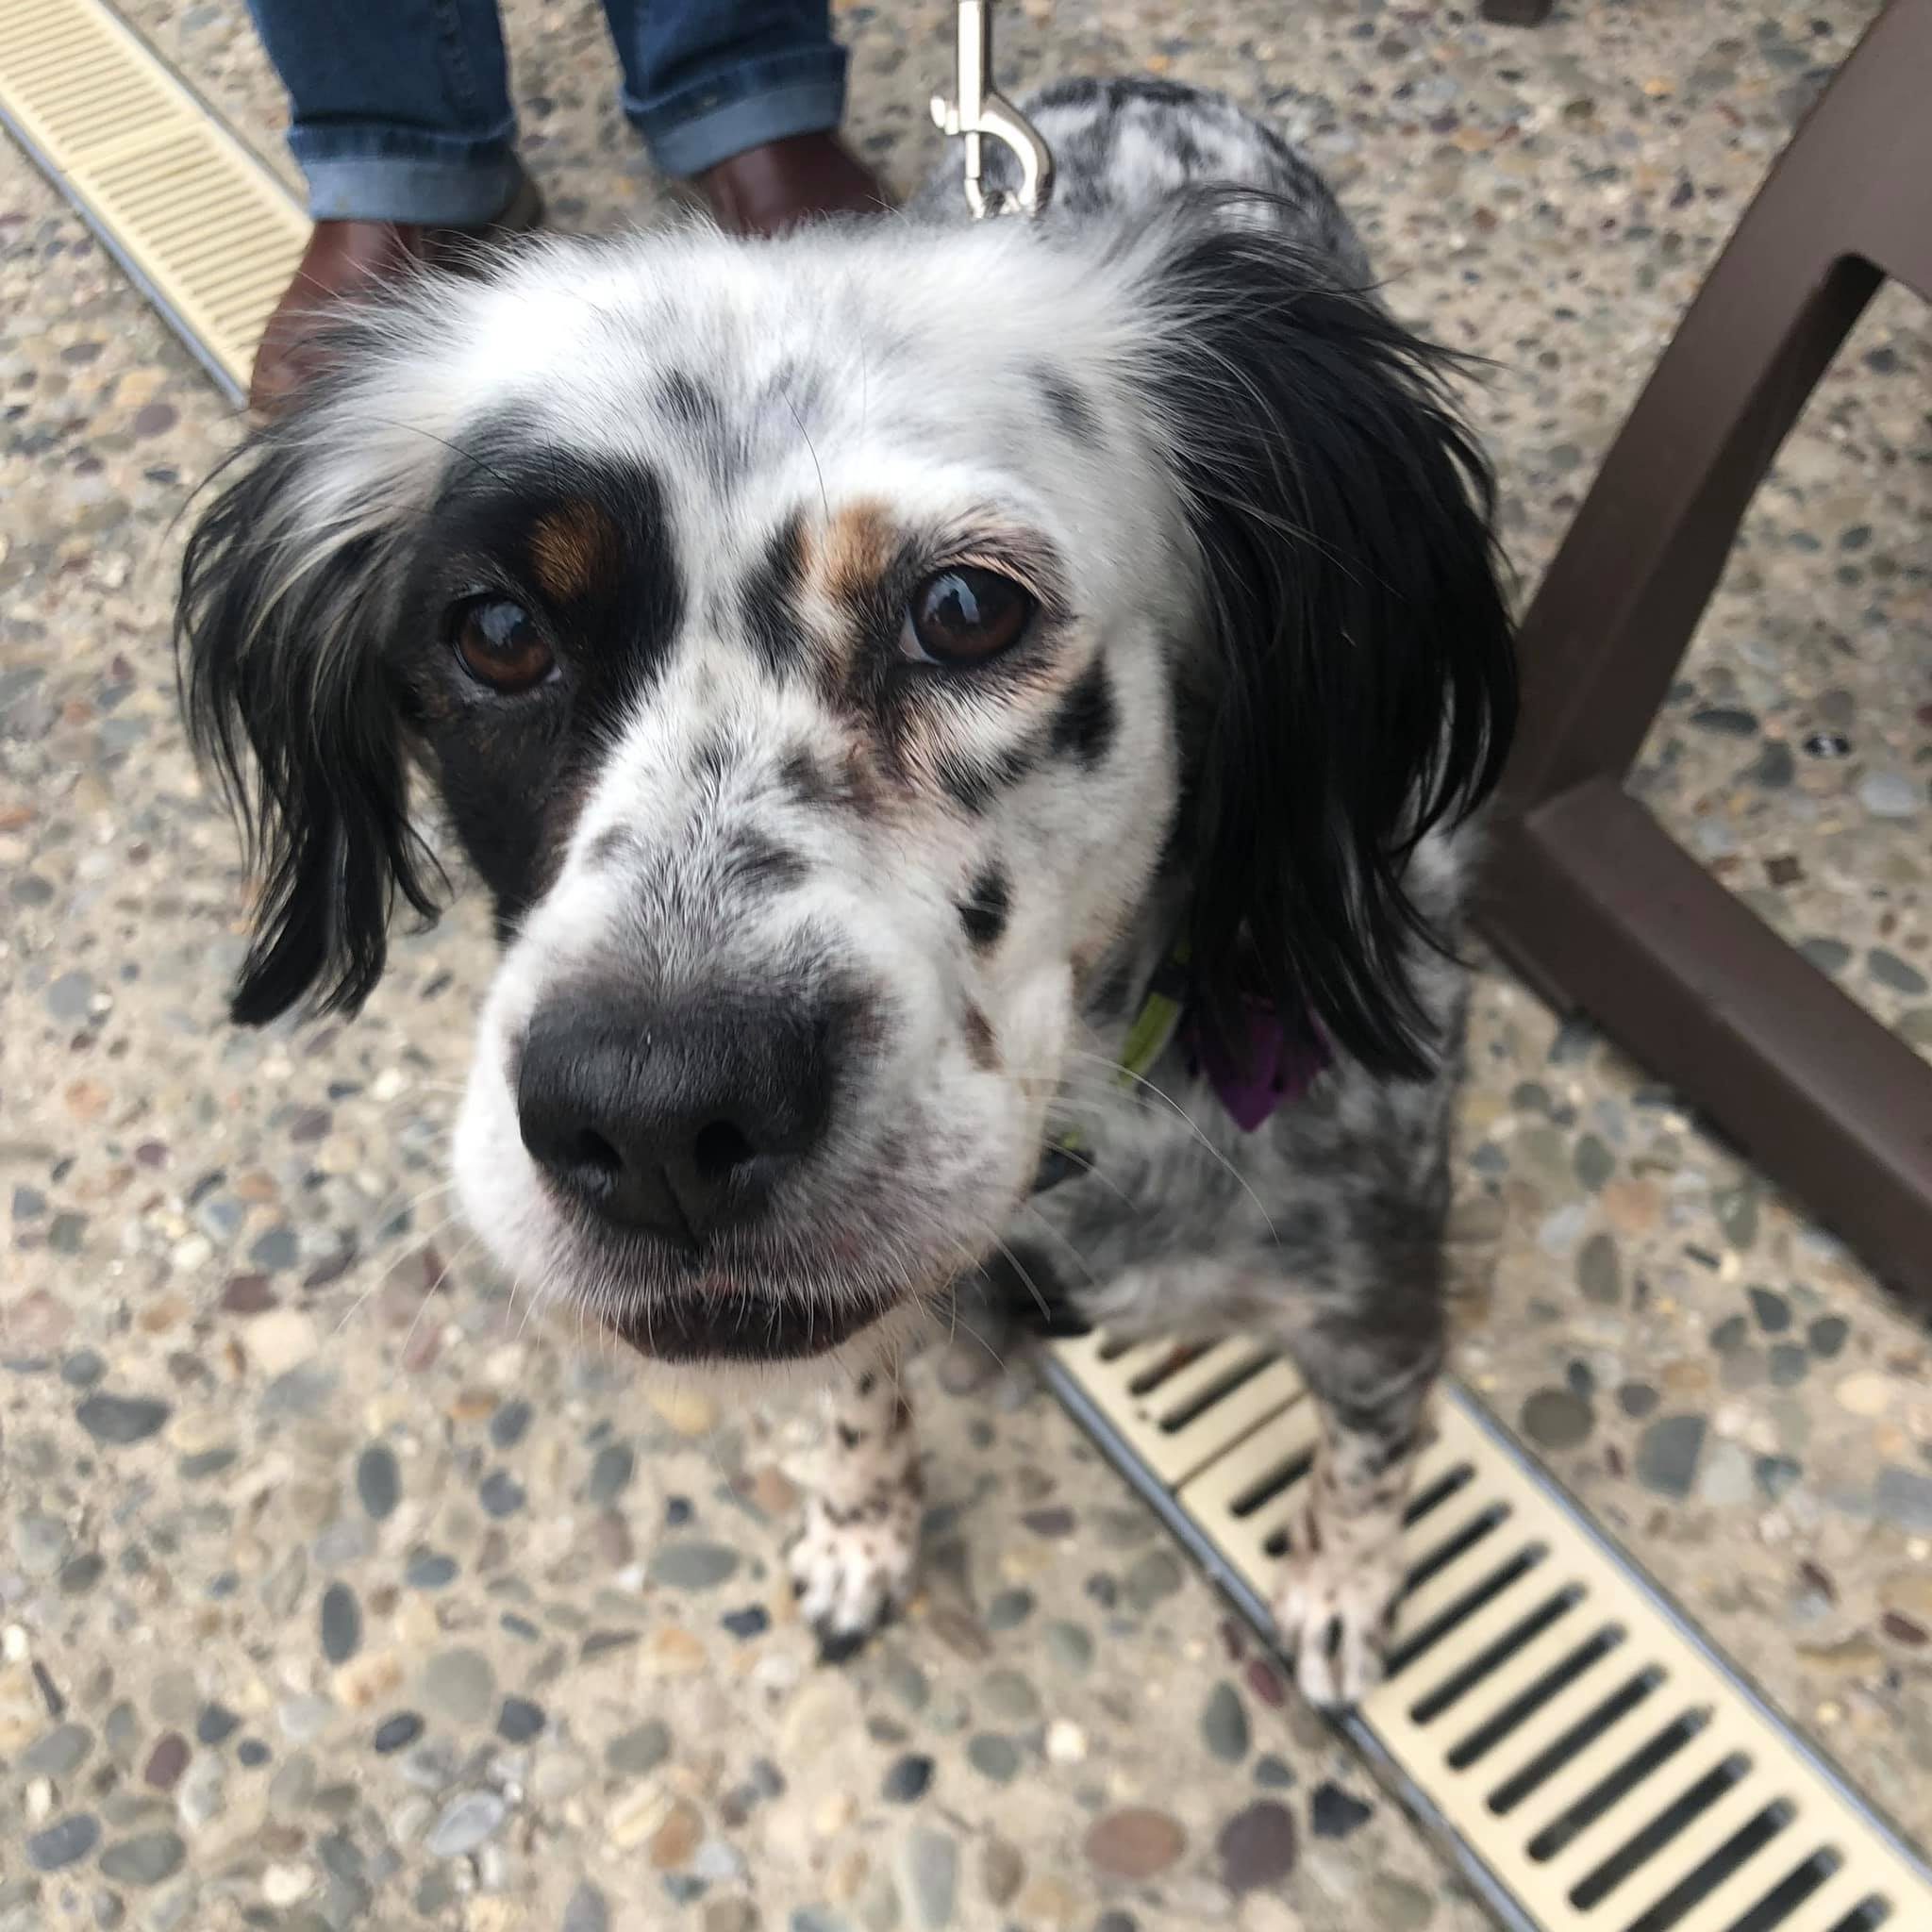 Spotted spaniel mix looking at camera